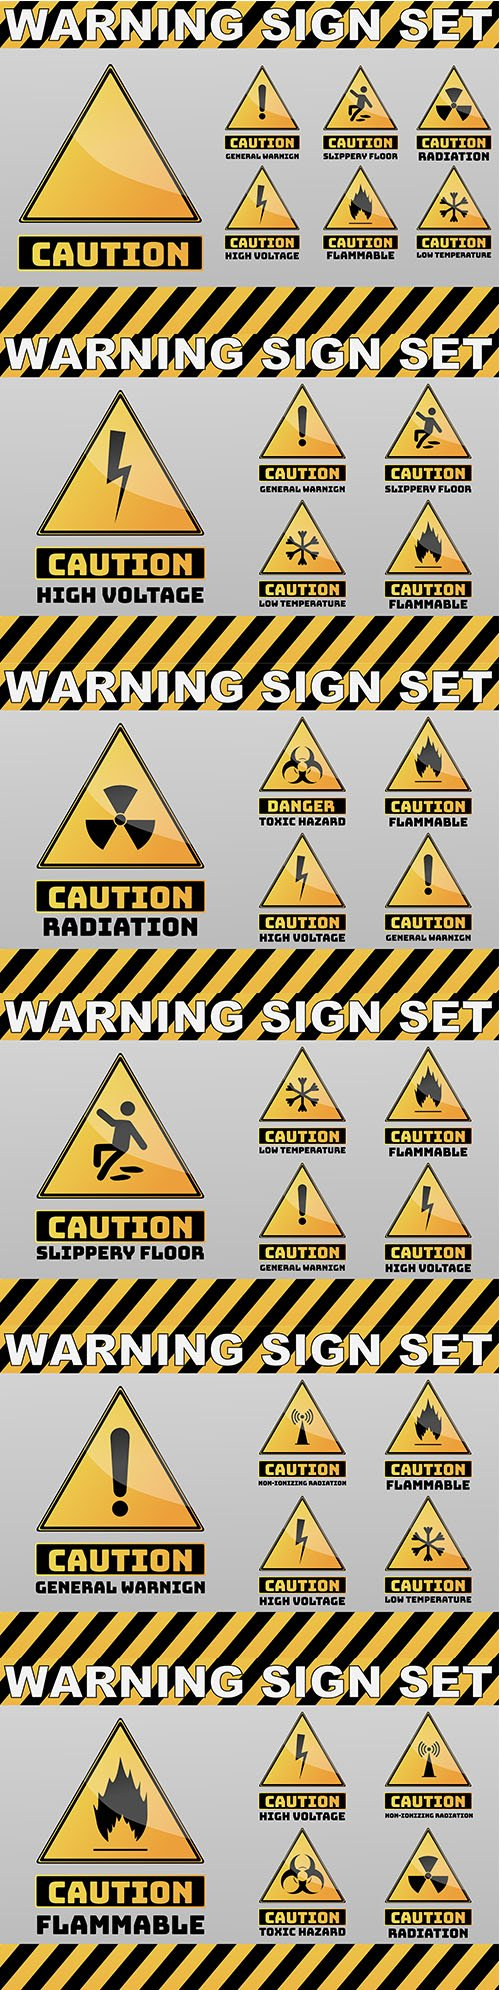 Caution Yellow Sign Object